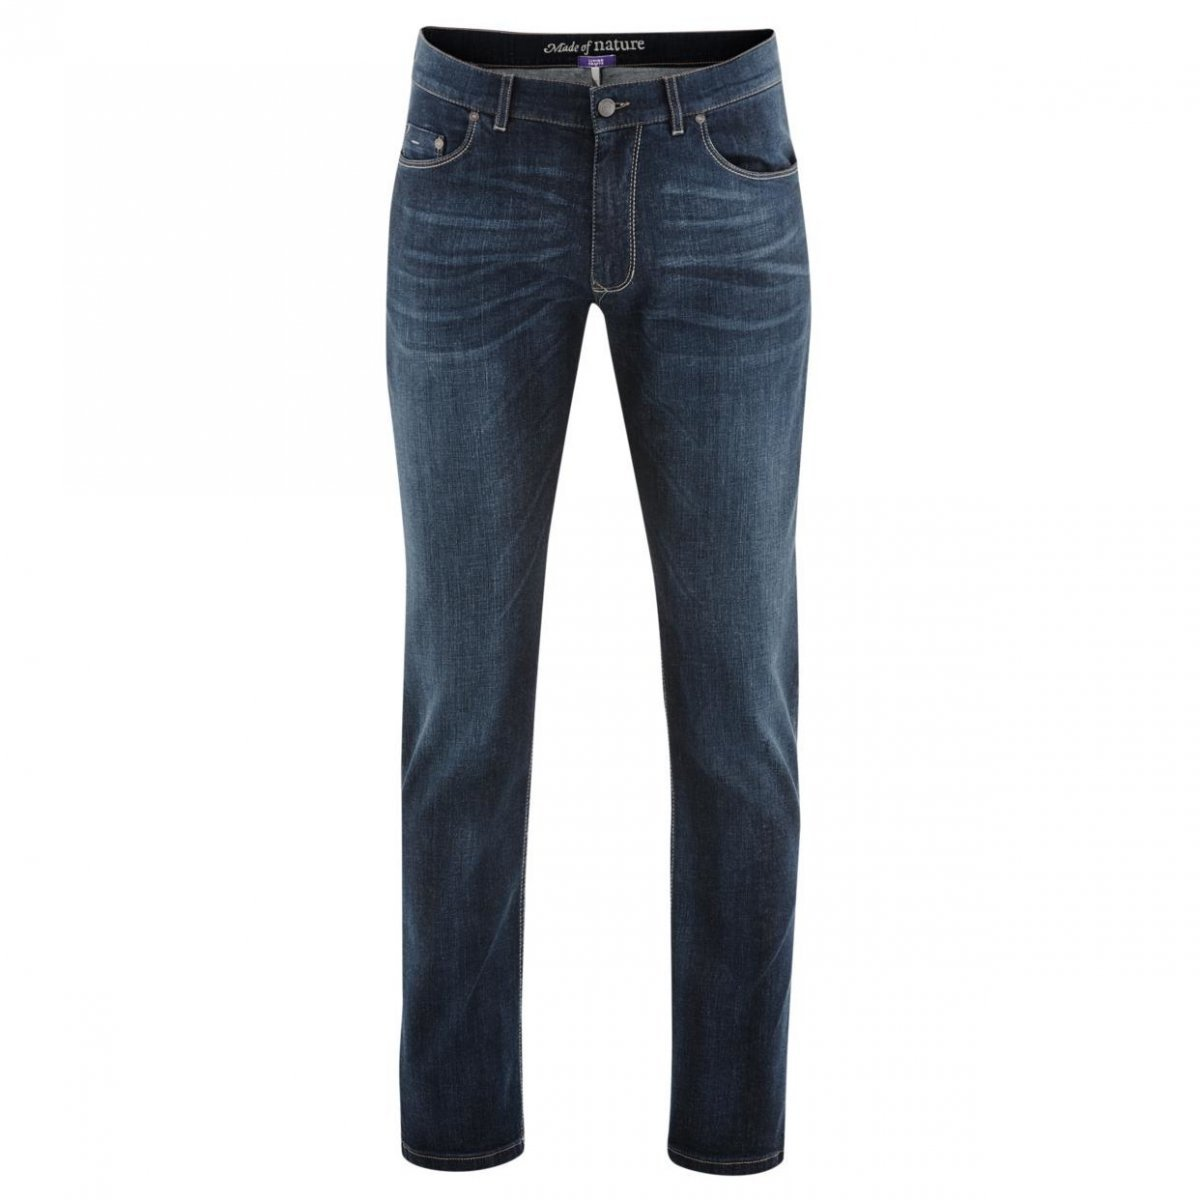 Jeans uomo Bosco in cotone biologico dark blue denim